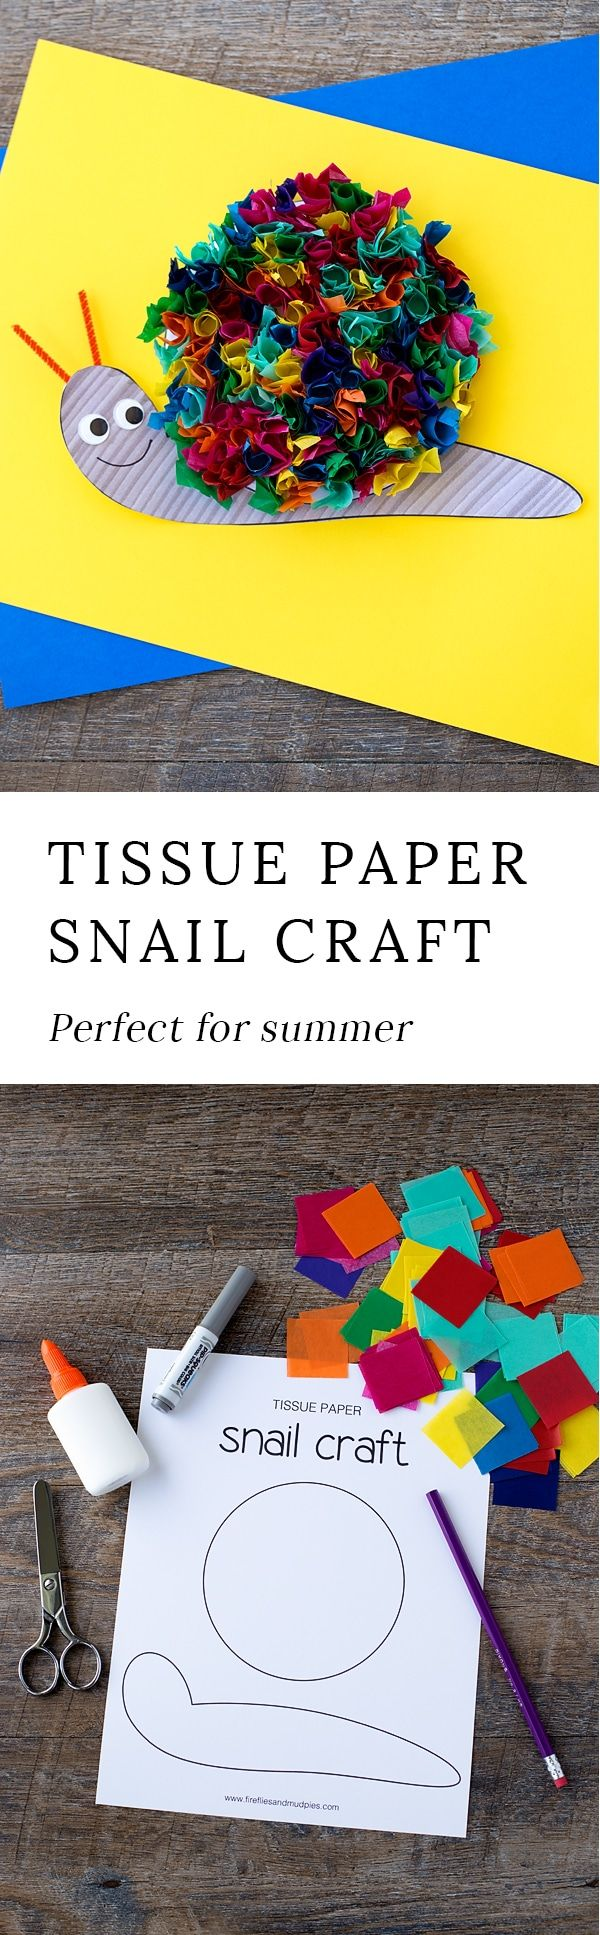 Kids of all ages will enjoy this colorful Tissue Paper Snail Craft. Perfect for kids who are working on developing fine-motor skills or who love animals.  via @https://www.pinterest.com/fireflymudpie/